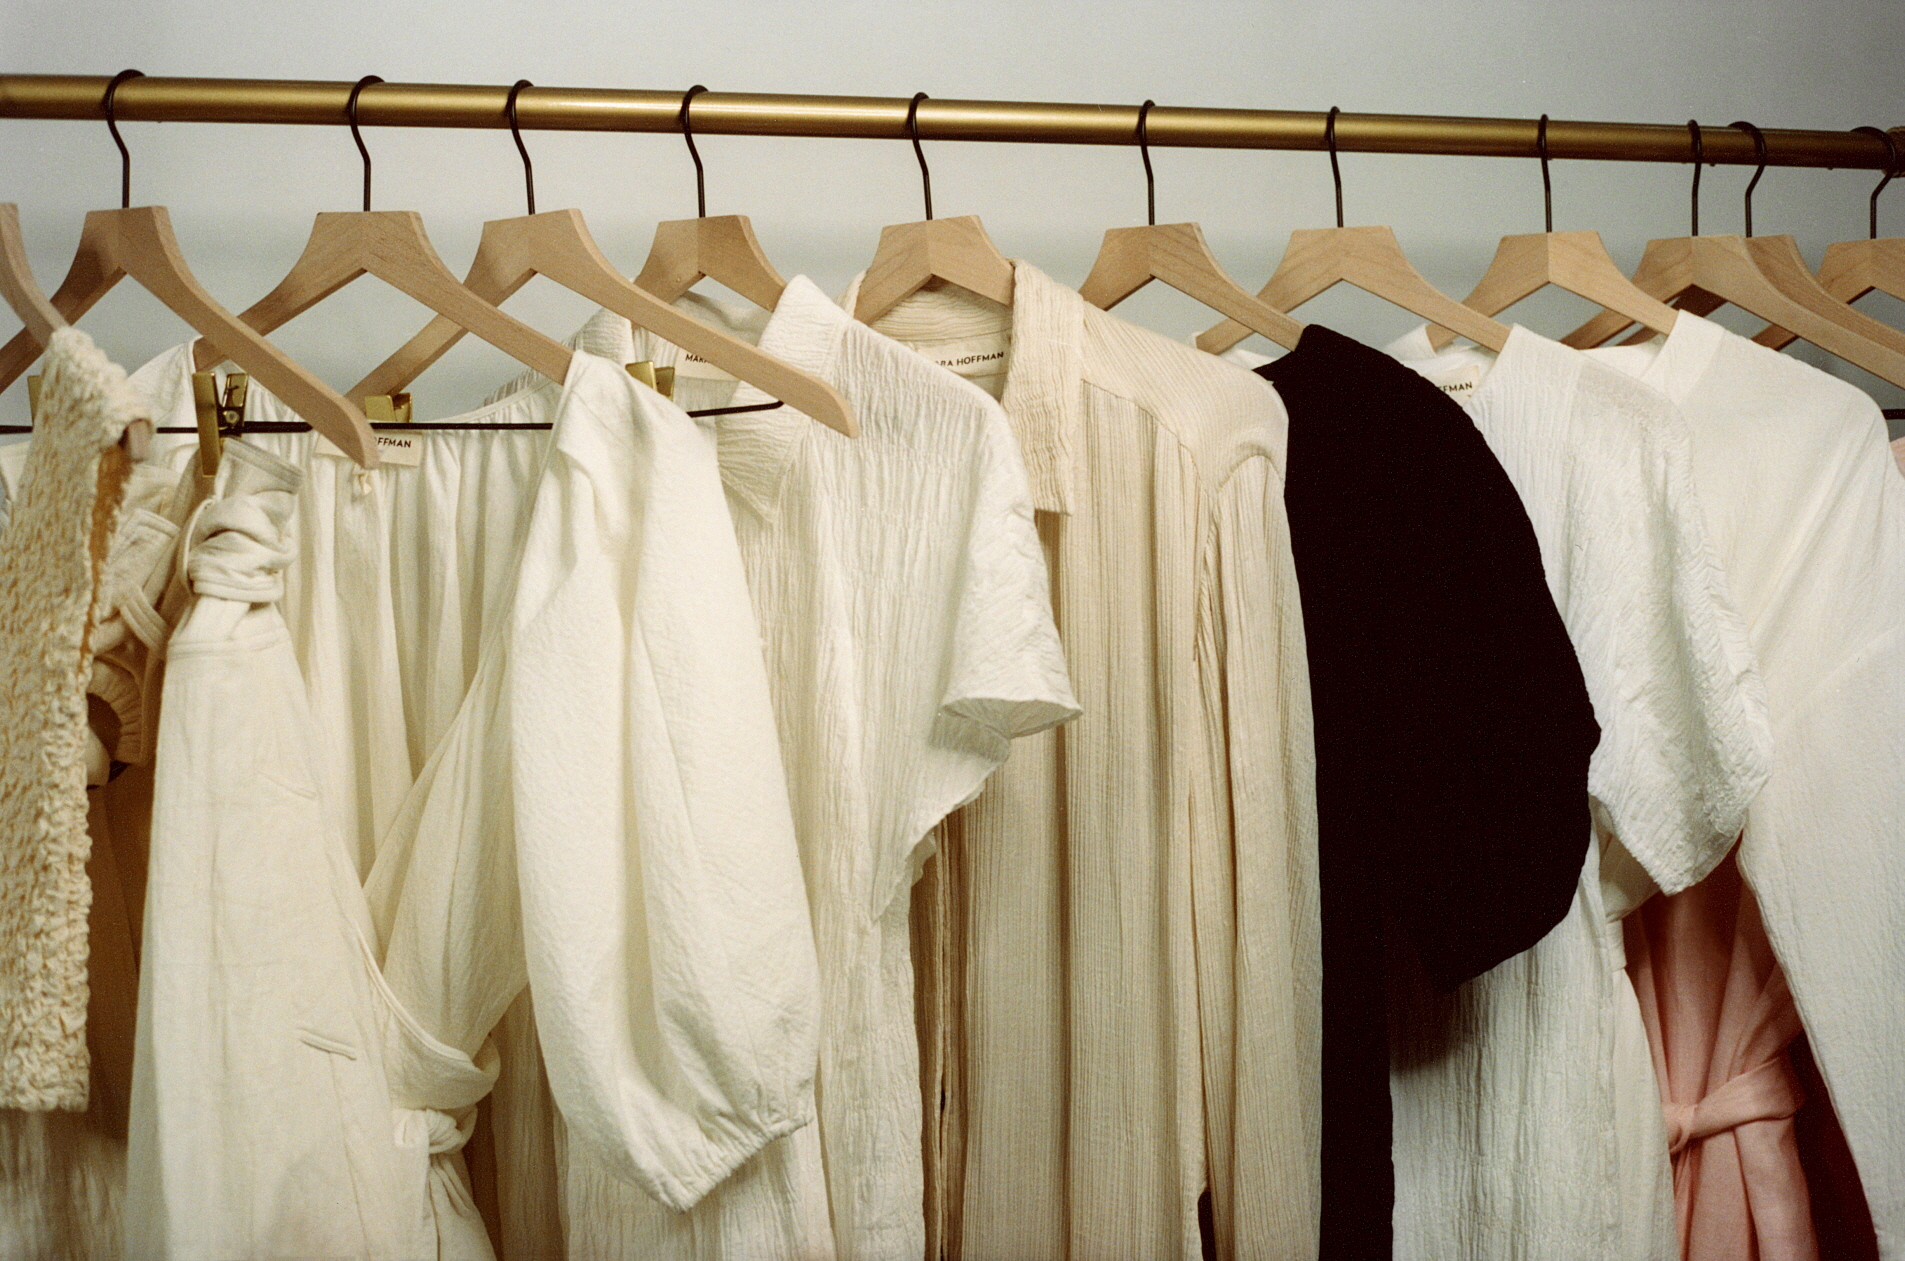 Clothes created under collaboration with Mara Hoffman